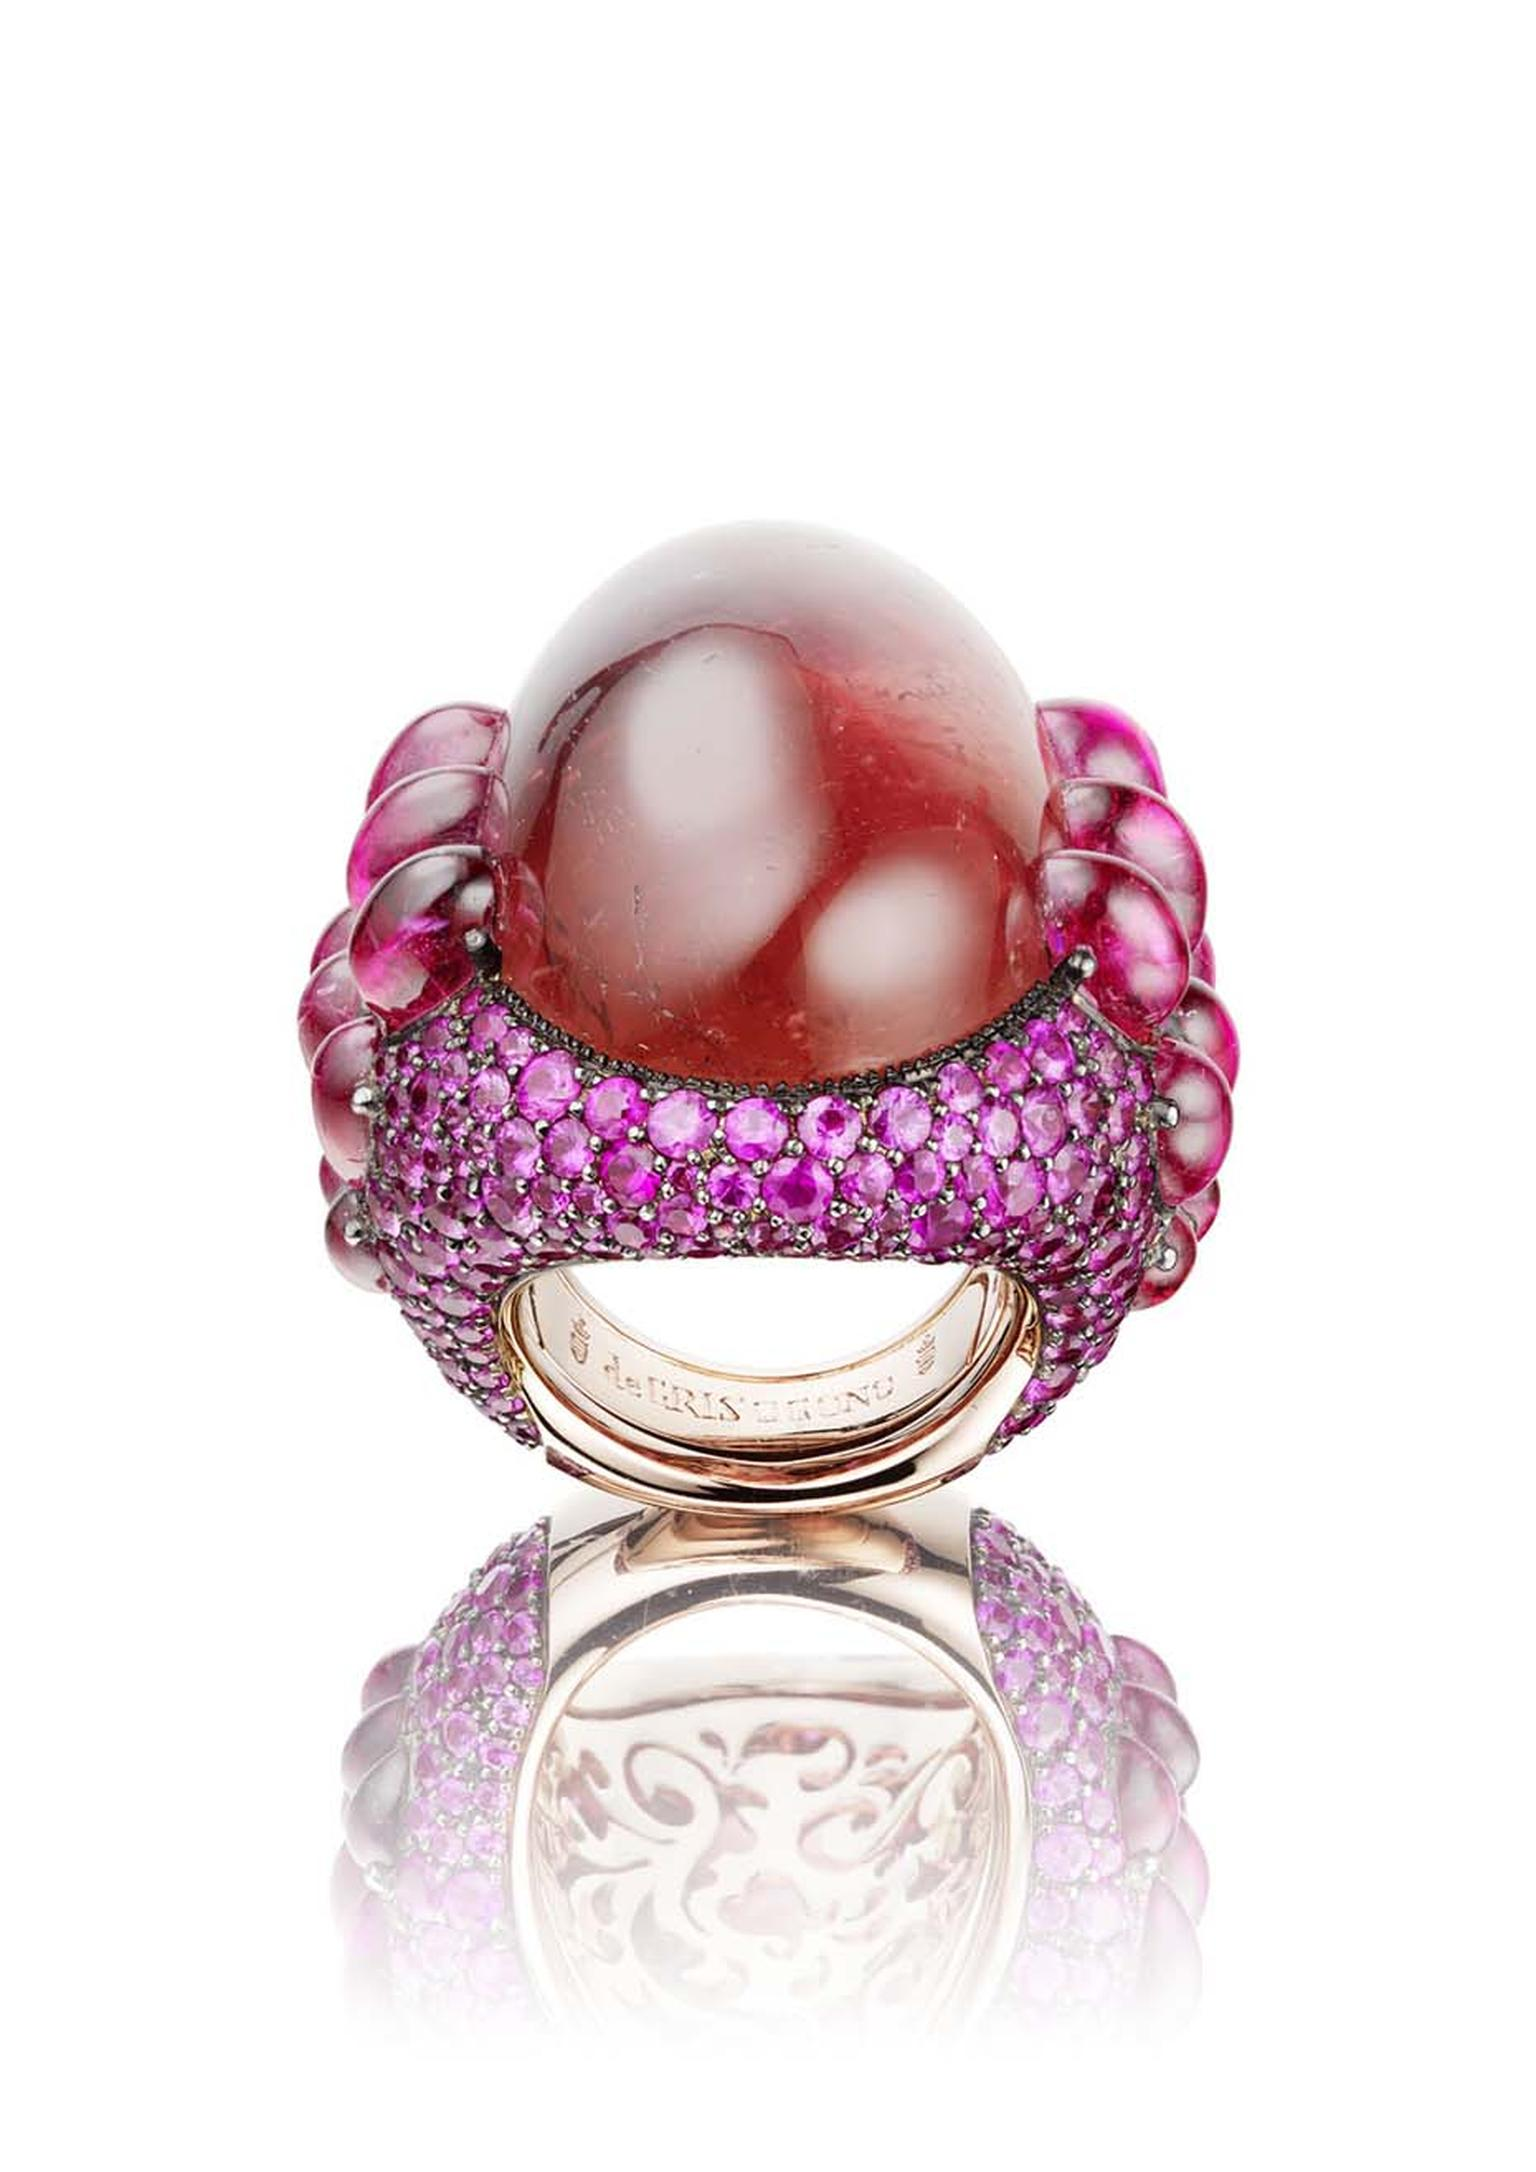 De GRISOGONO Melody of Colours ring in pink gold, set with an oval-shaped cabochon-cut tourmaline of 79.43ct, surrounded by cabochon-cut tourmalines and pink sapphires.